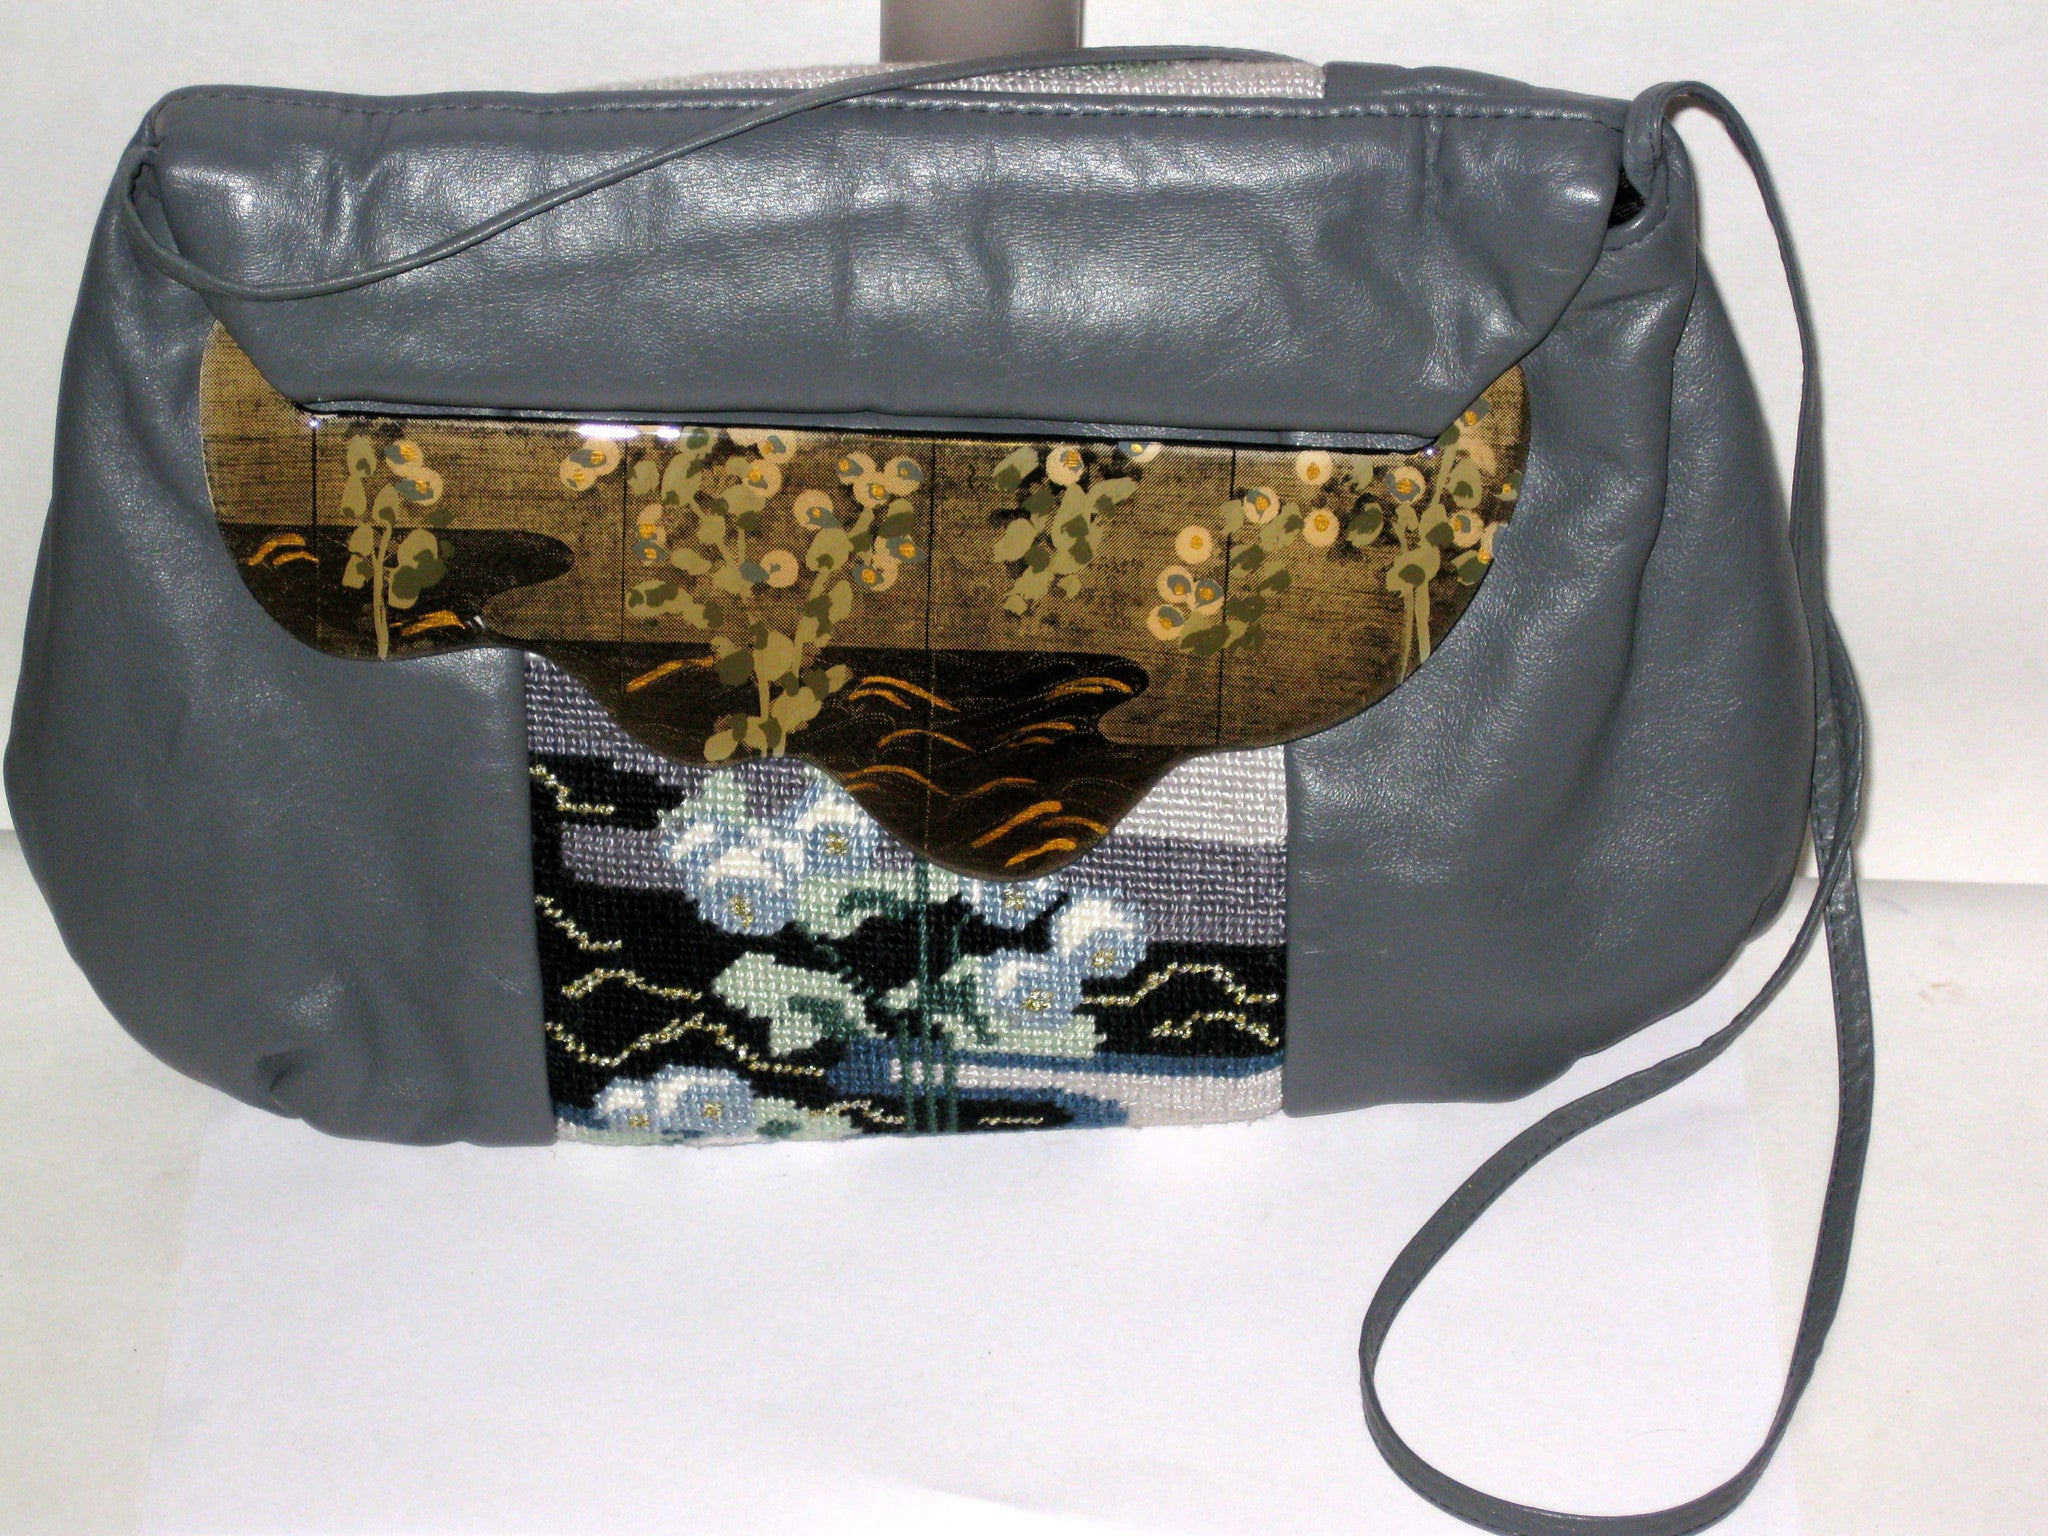 Vintage Patricia Smith Moon Bag Grey Leather Needlepoint Purse